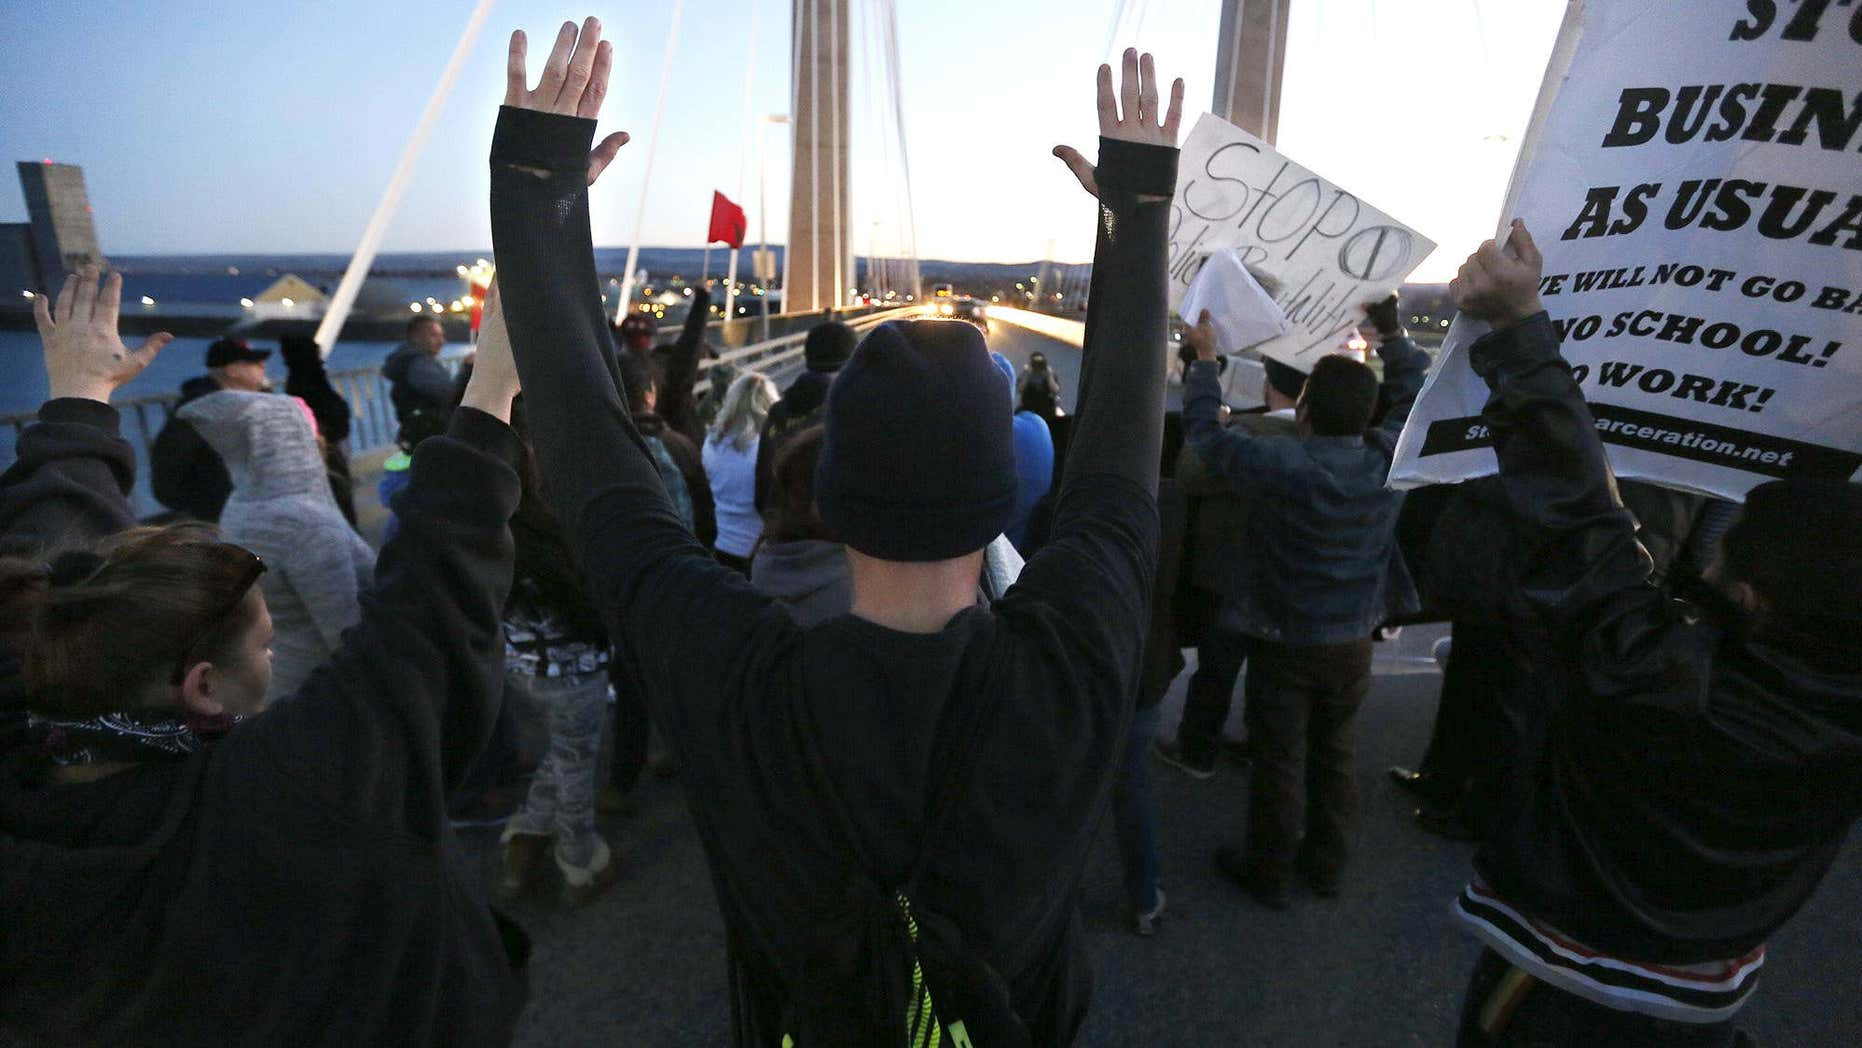 Feb. 21, 2015: Protesters hold up their hands and signs on the cable bridge.